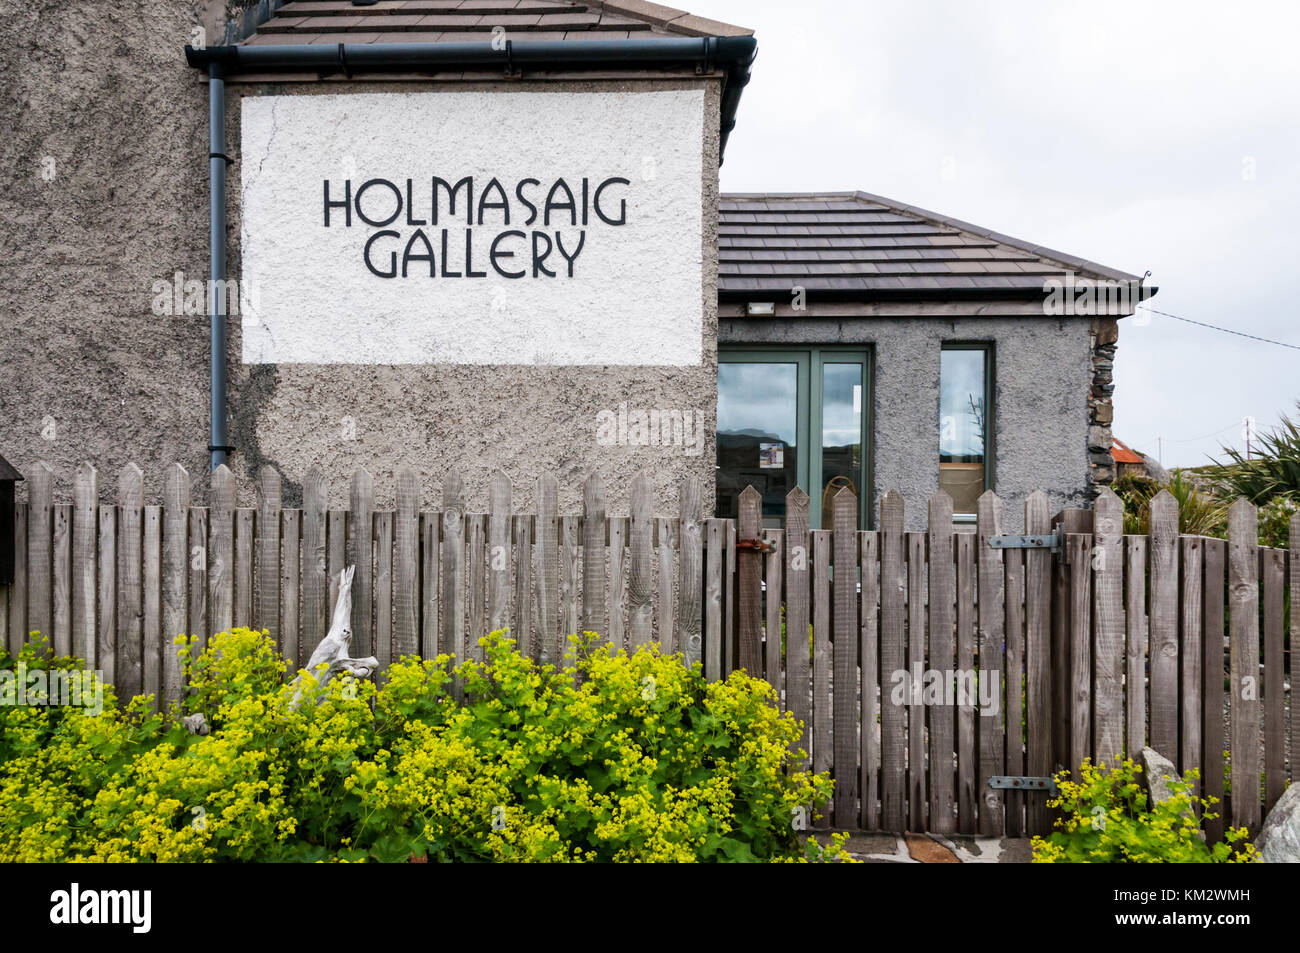 Holmasaig Gallery at Quidinish on Isle of Harris, Outer Hebrides - Stock Image